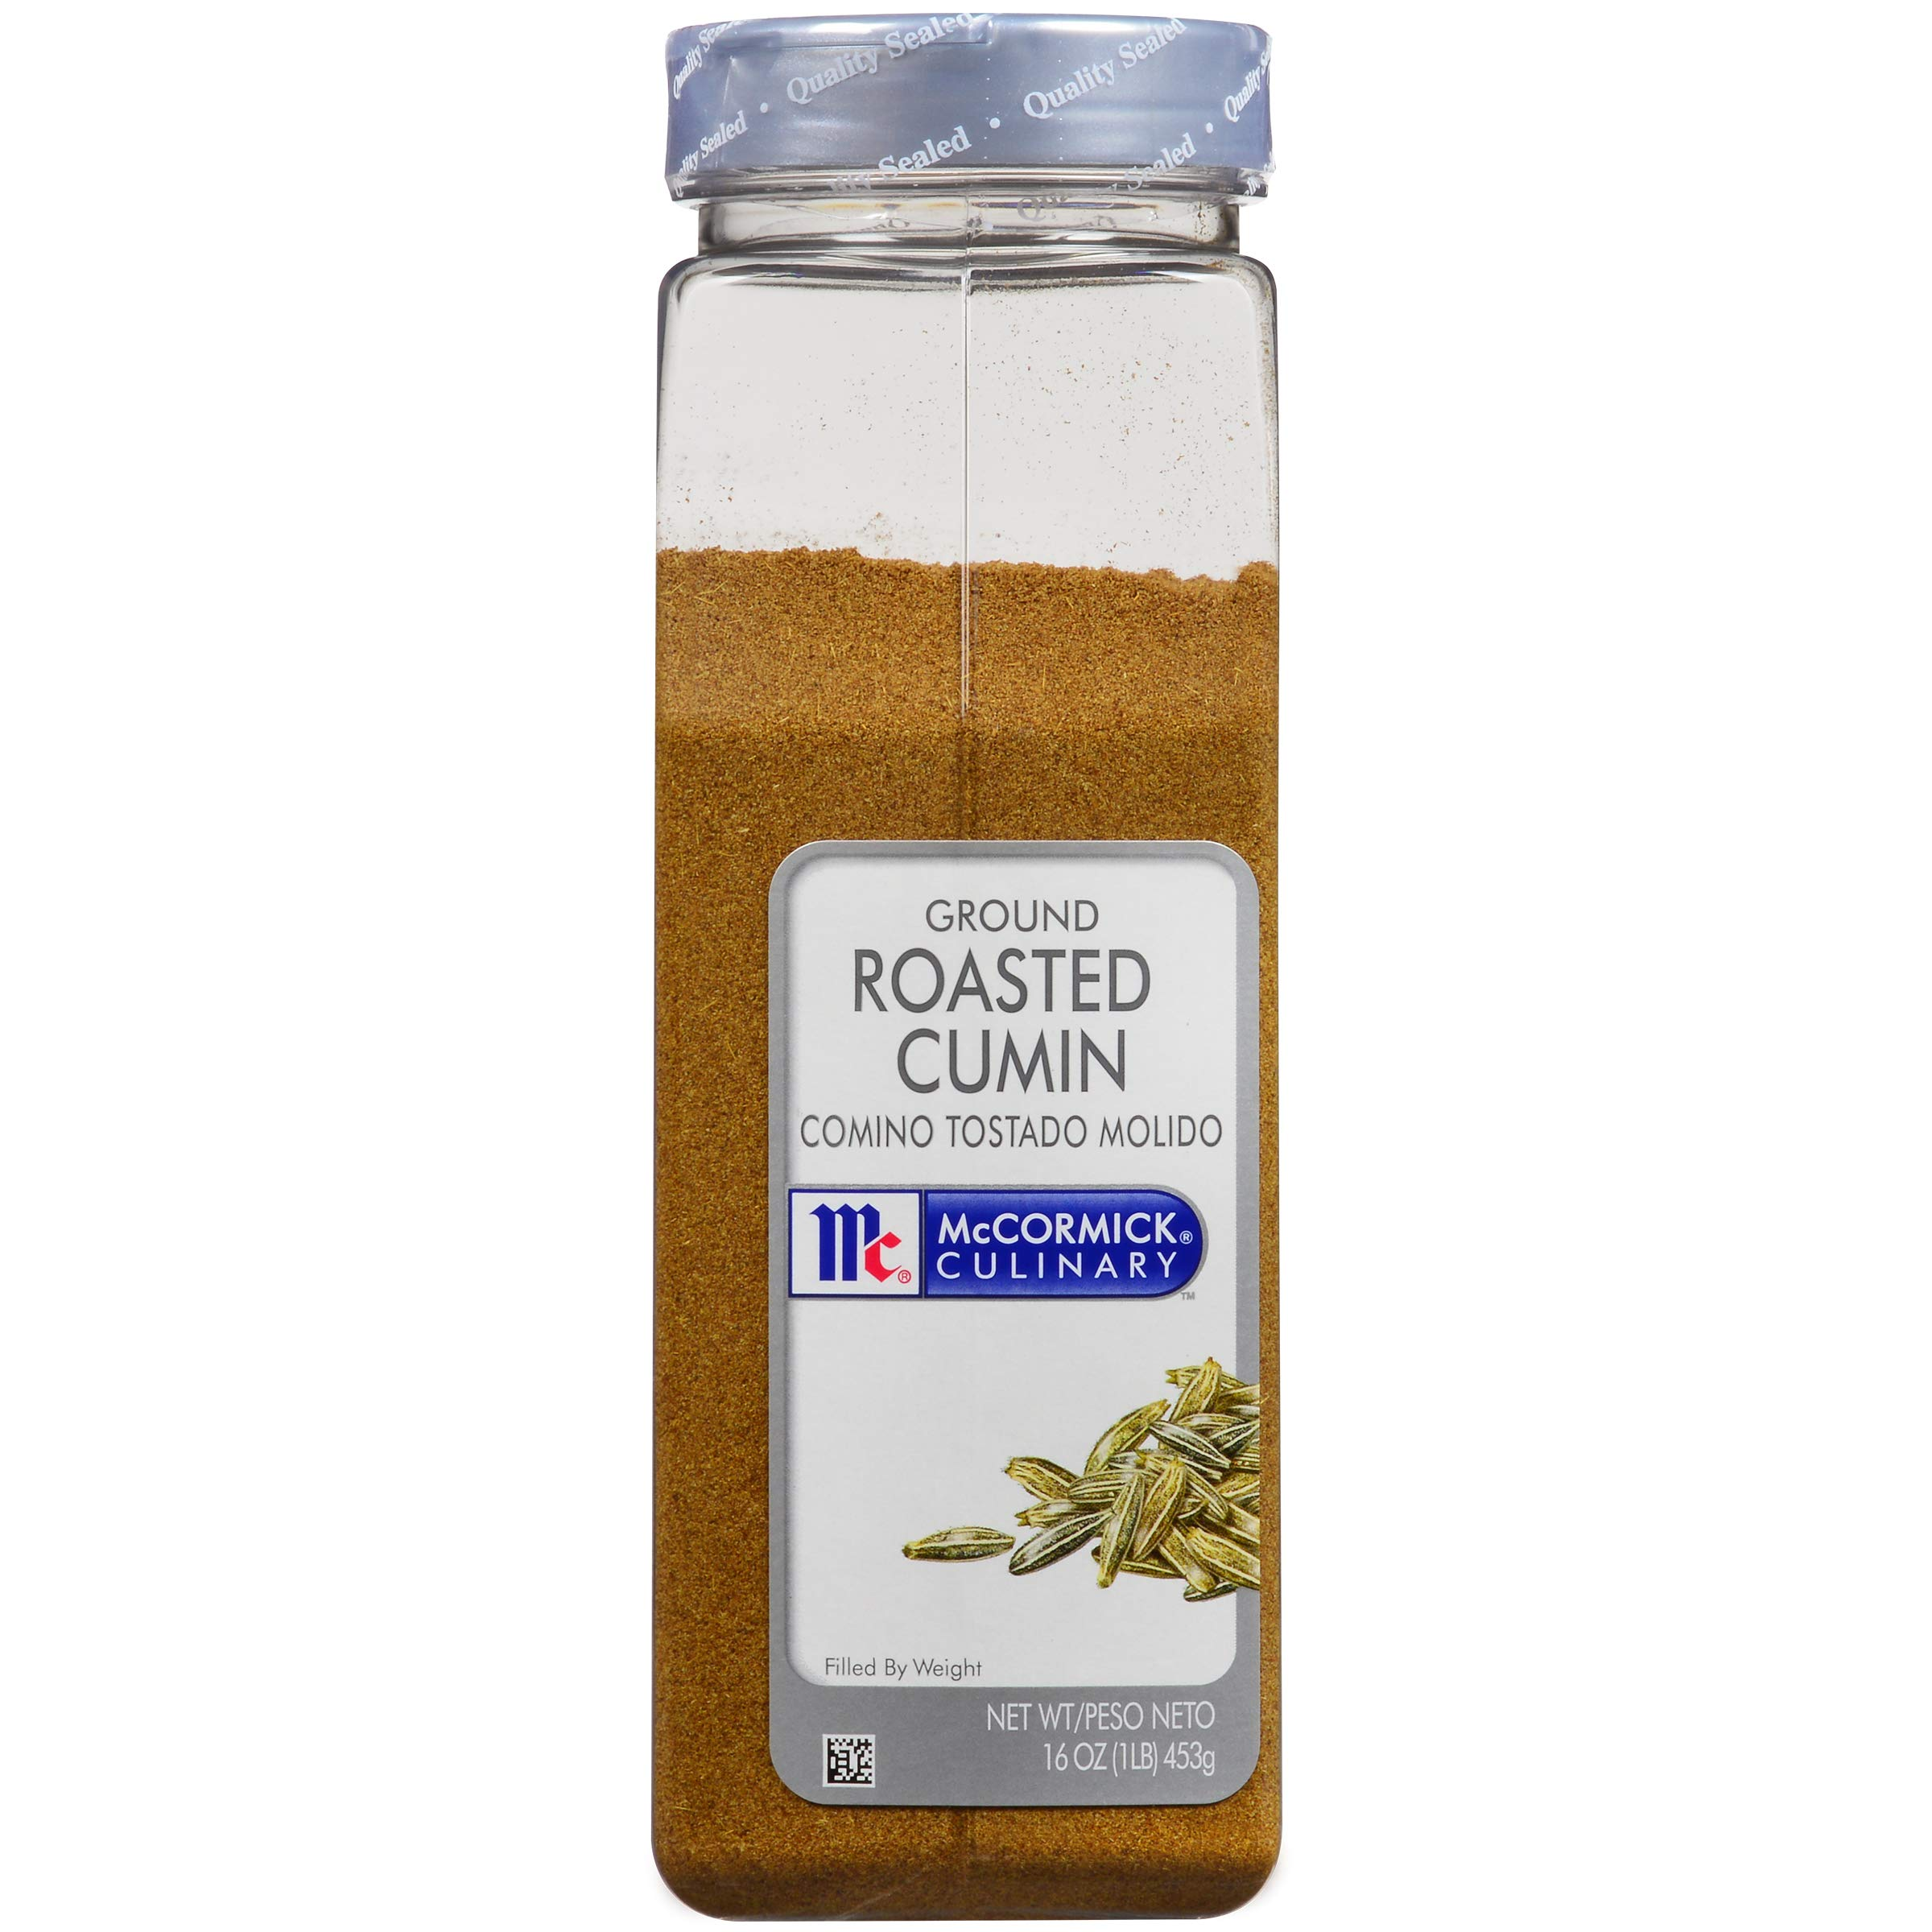 McCormick Culinary Roasted Cumin, 16 oz